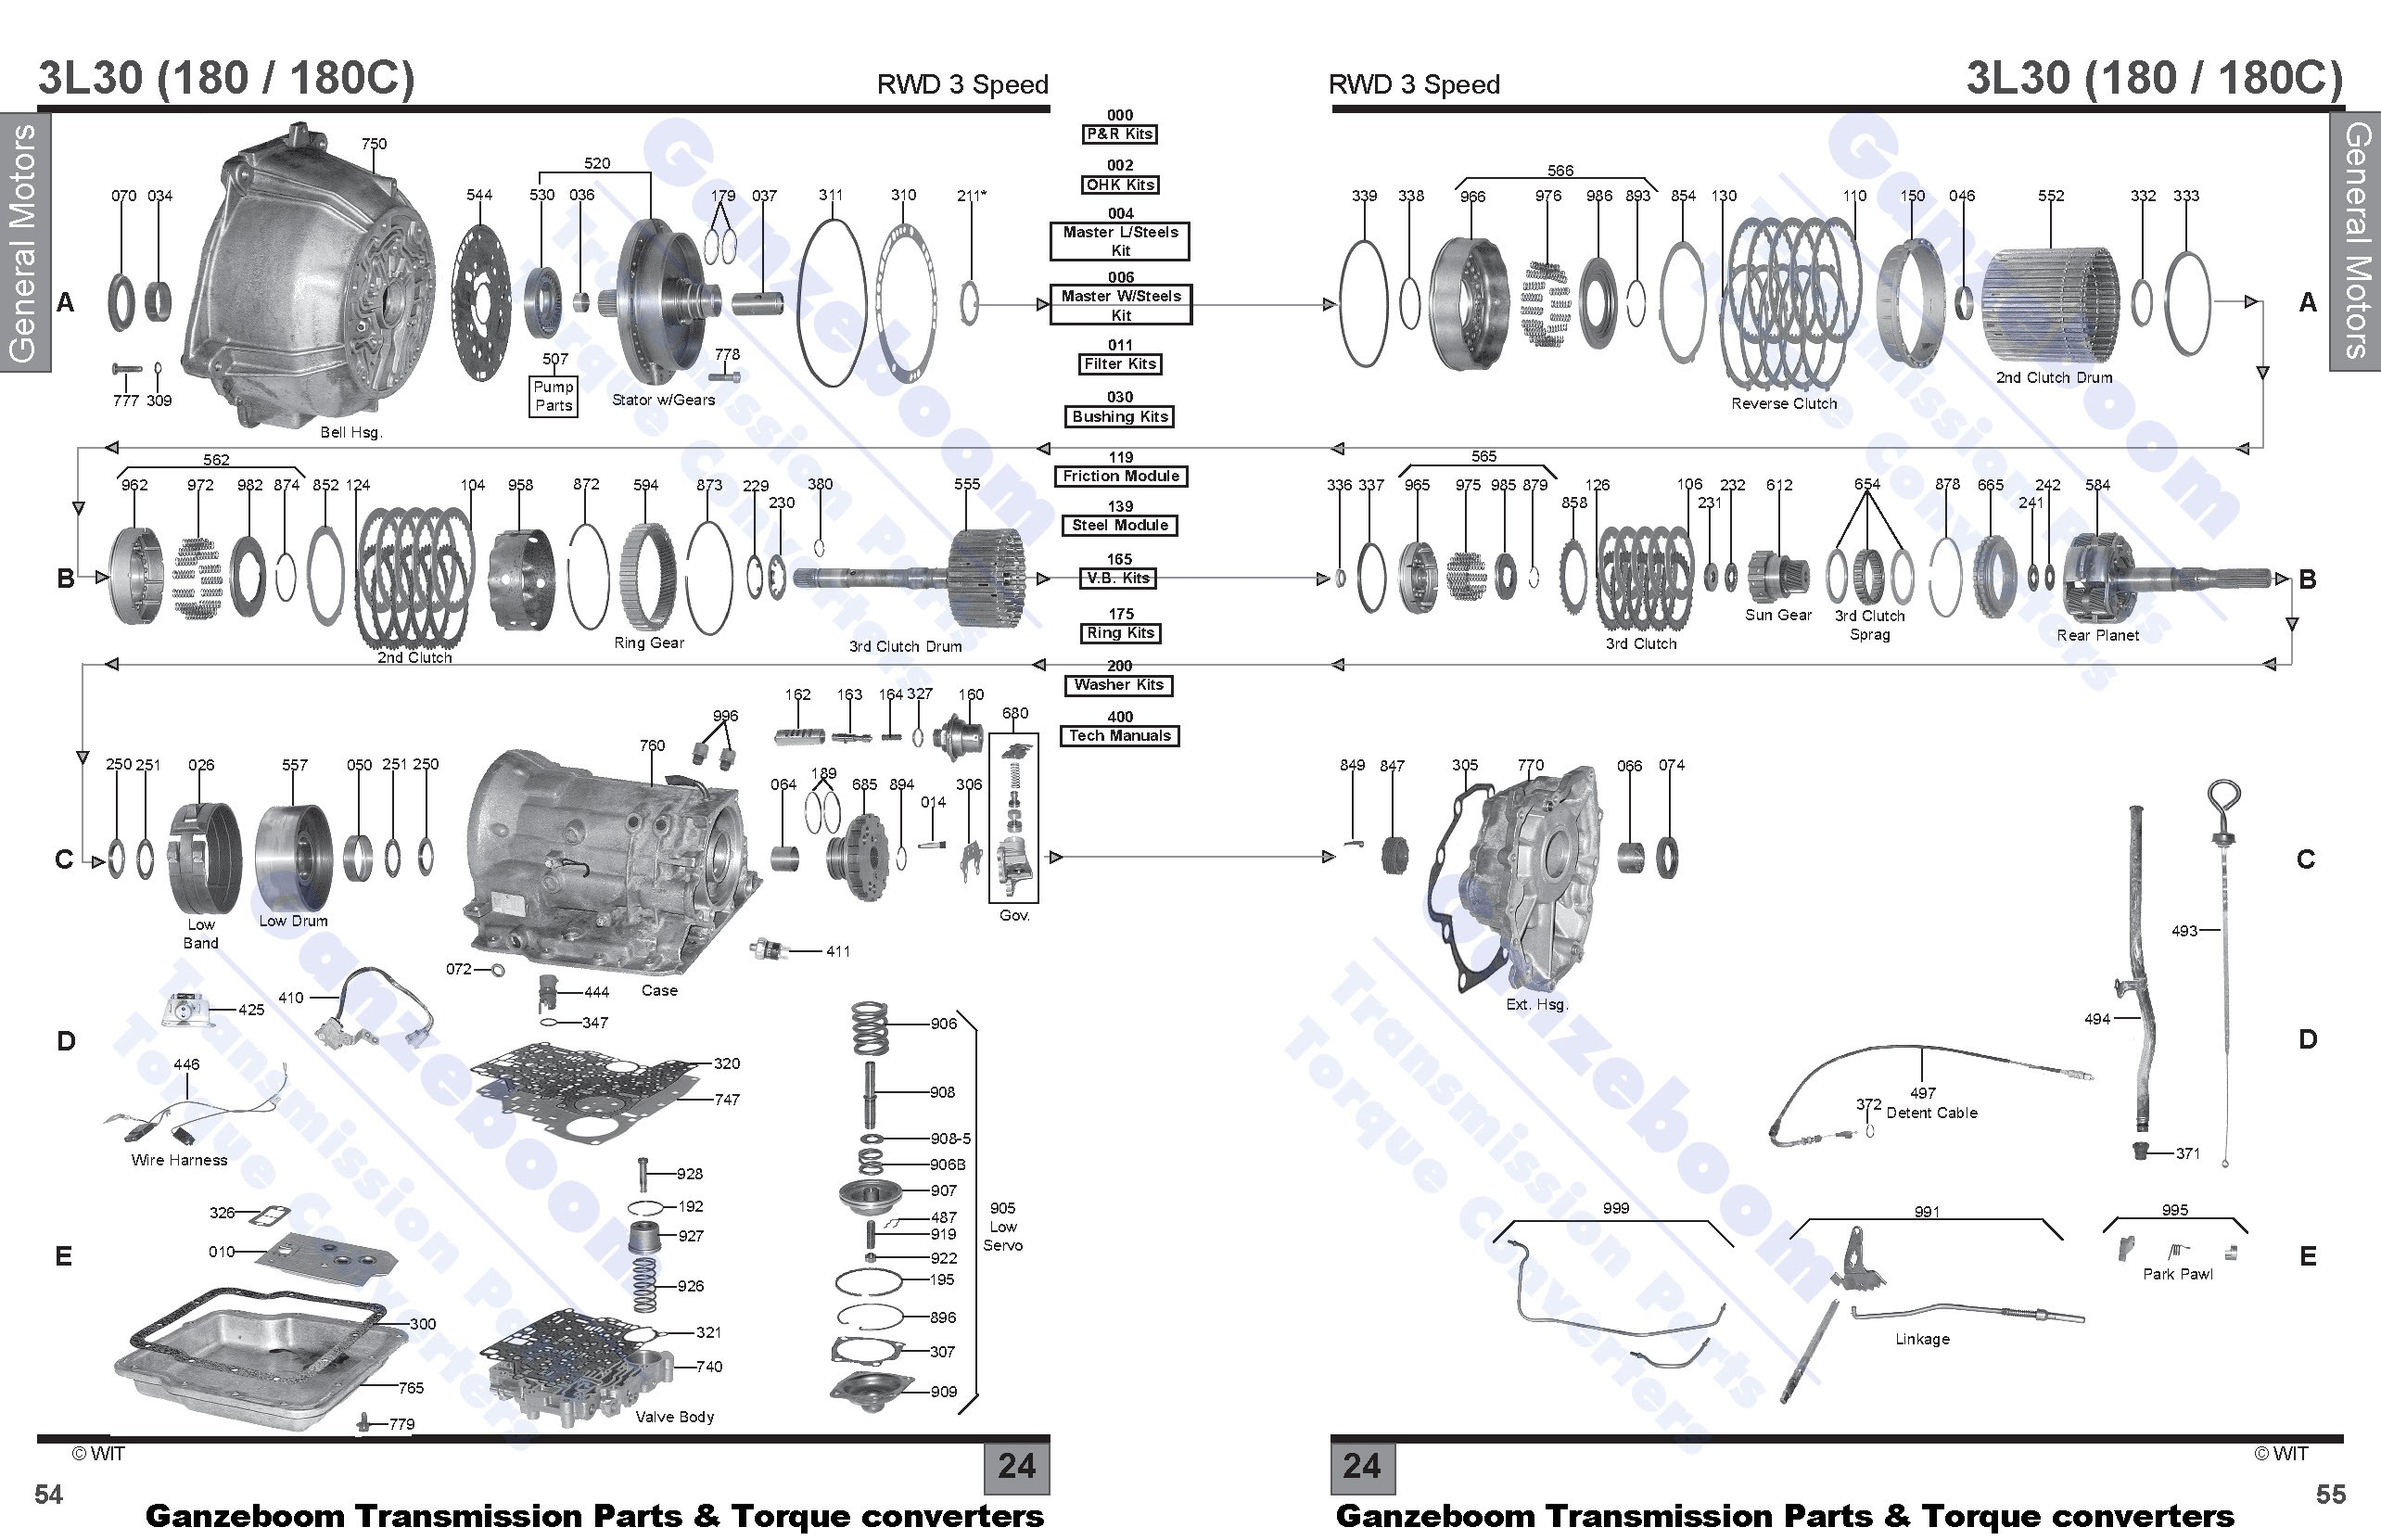 th180 th180c rh webshop ganzeboom net Turbo 350 Transmission Diagram Turbo 350 Transmission Diagram